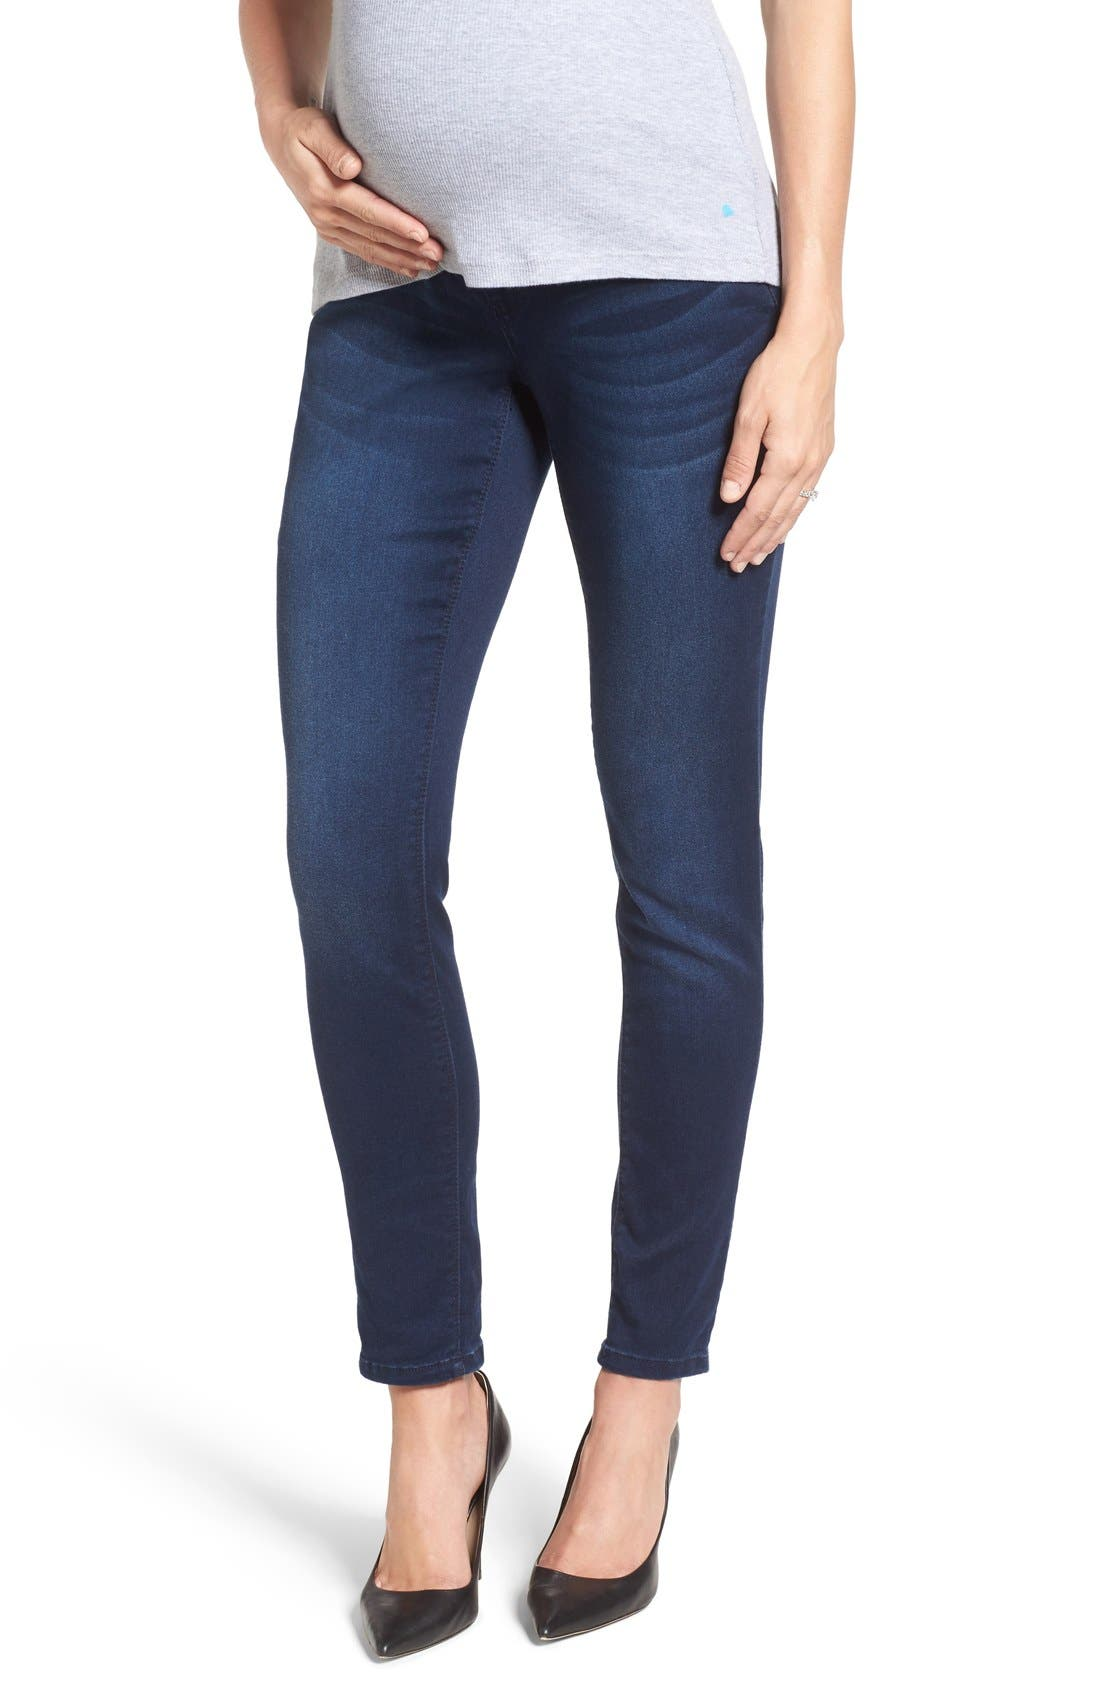 1822 Denim 'Ankle Biter' Over the Bump Rolled Cuff Maternity Skinny Jeans